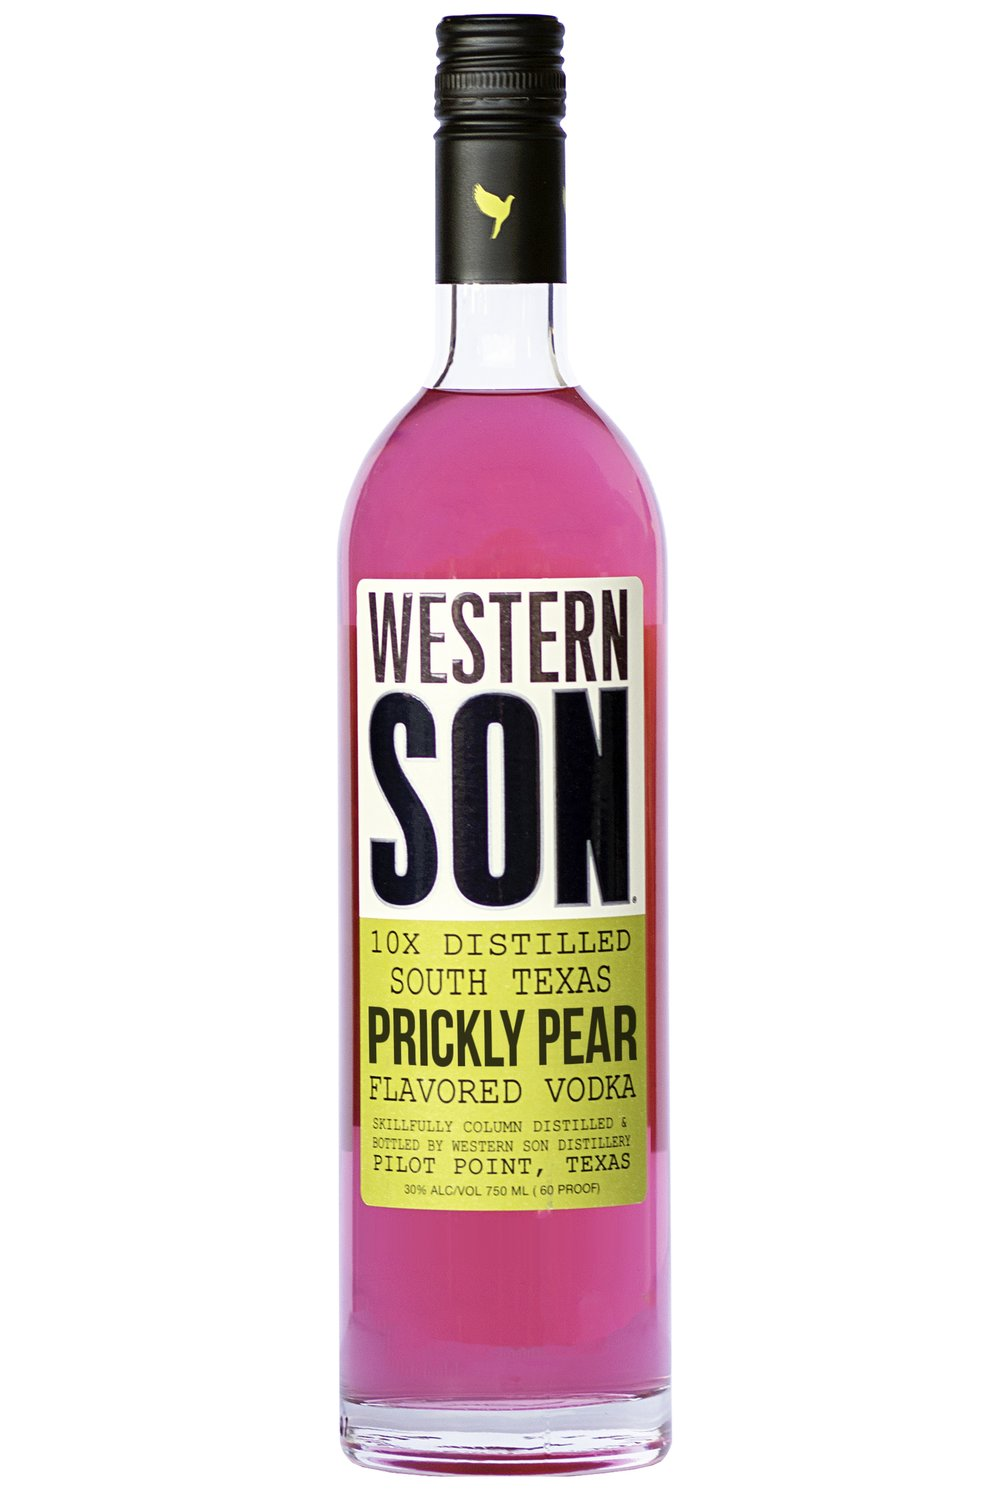 Prickly Pear Margarita   1 oz. Western Son Prickly Pear Vodka 1 oz. silver tequila 1 oz. lime juice 1 oz. simple syrup/agave